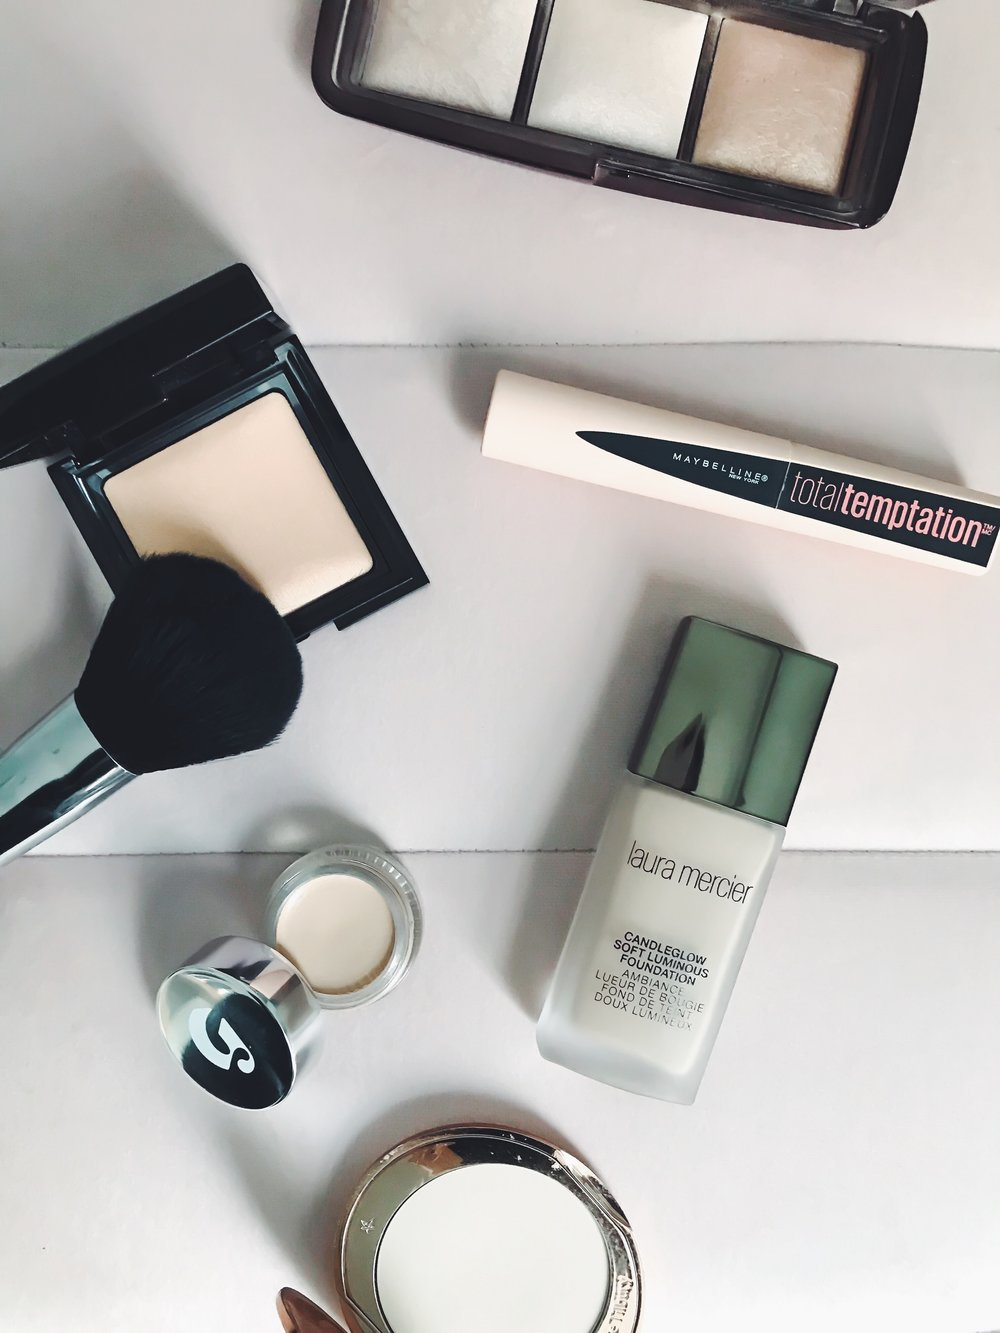 Recent Beauty Buys | Pine Barren Beauty | Laura Mercier foundation, Charlotte Tilbury setting powder, Laura Mercier setting powder, Maybelline mascara, Glossier concealer, Hourglass ambient light palette, beauty product review, beauty product flat lay